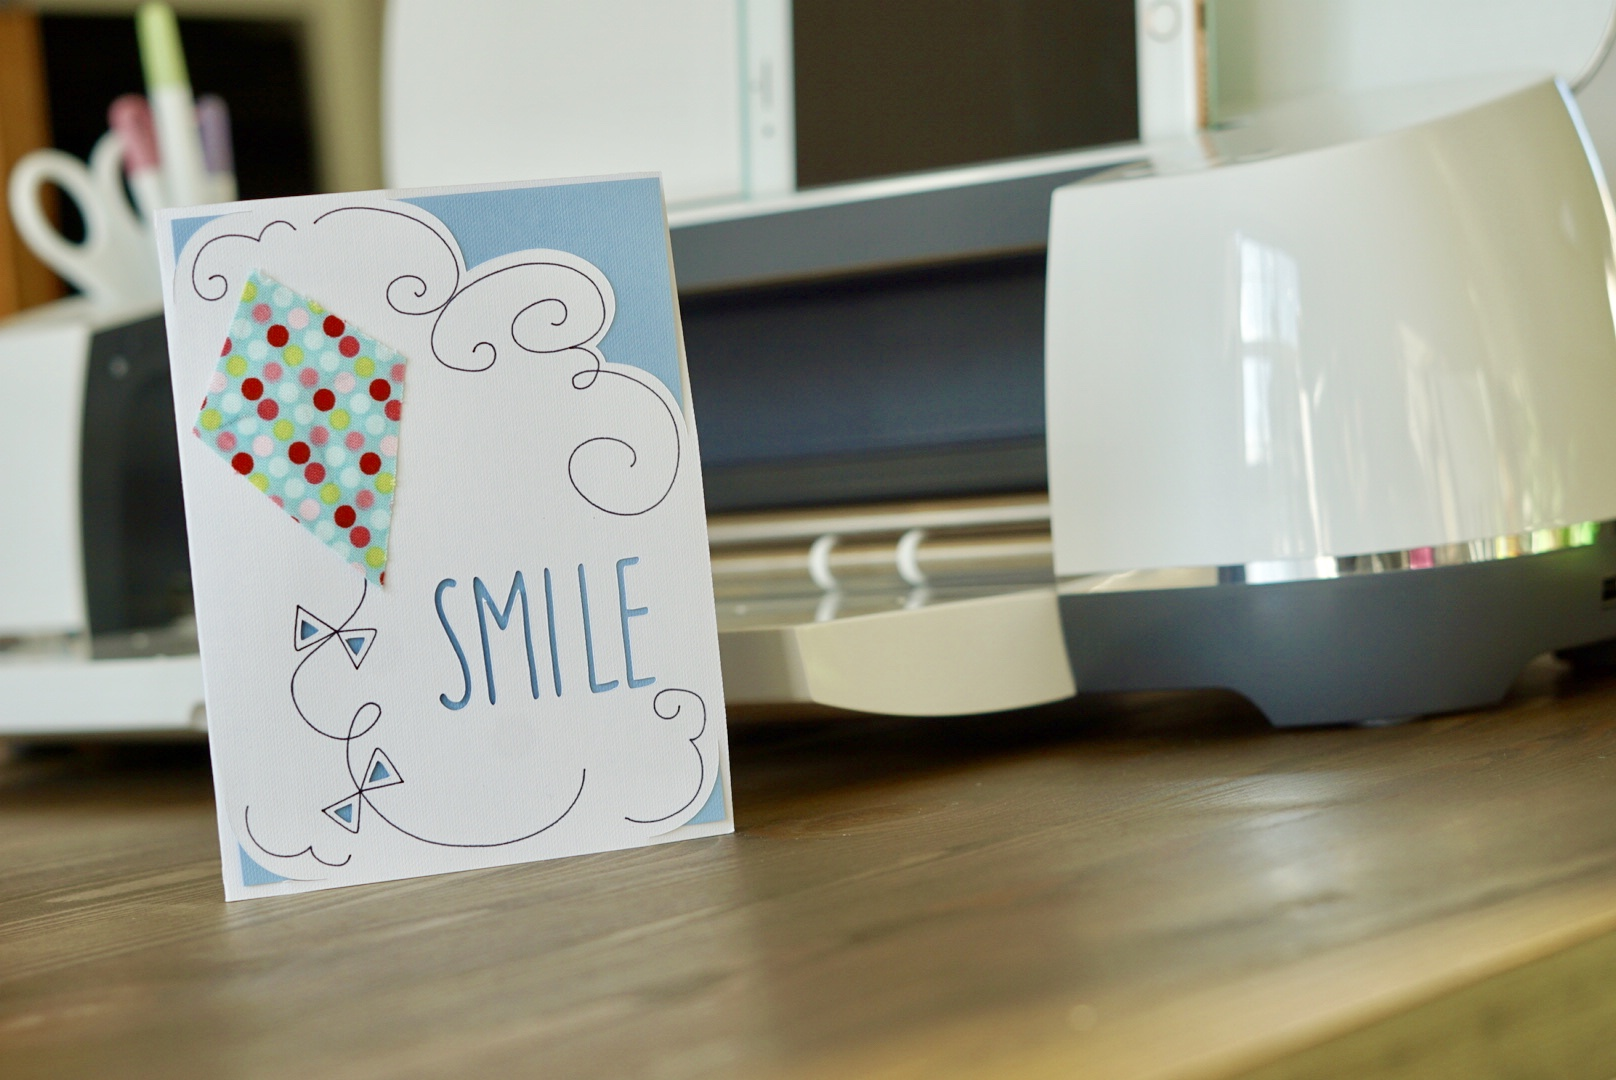 Cricut Maker review and some new features #ad - MummyConstant